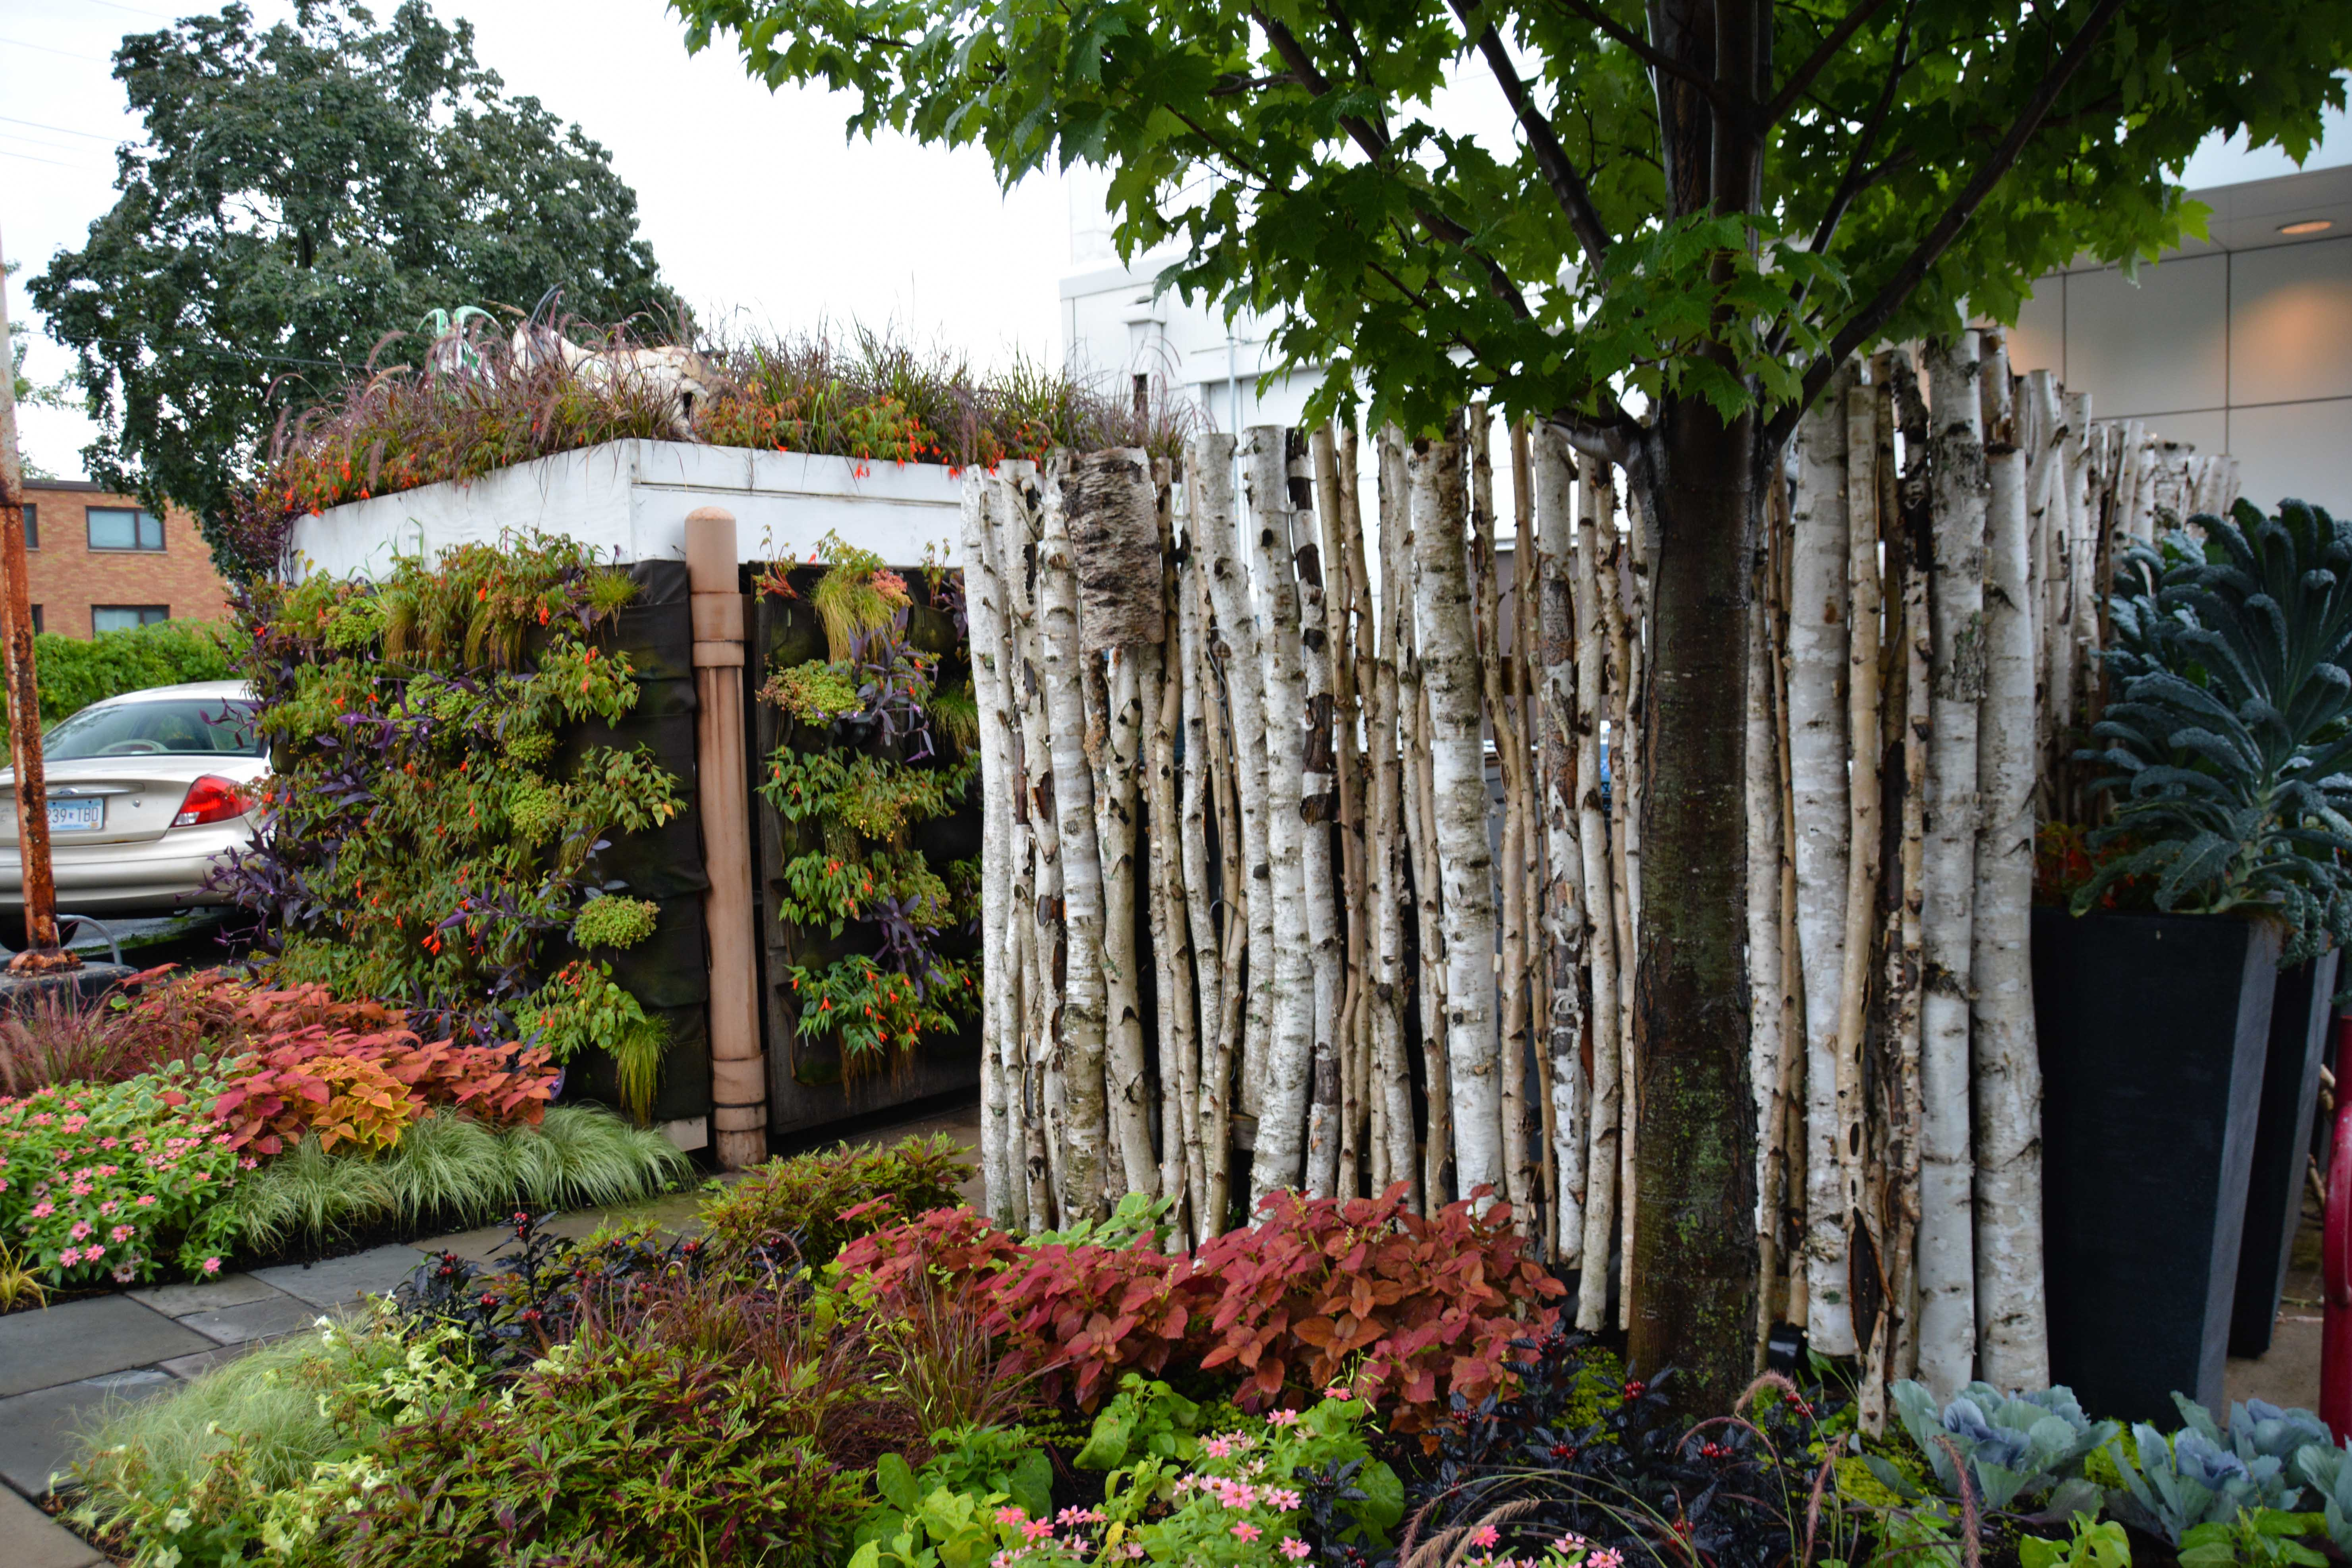 A visit to Tangletown Gardens and Wise Acres in Minneapolis, MN. Birch log and greenwall screening used to cover utilities - More images at Thinkingoutsidetheboxwood.com